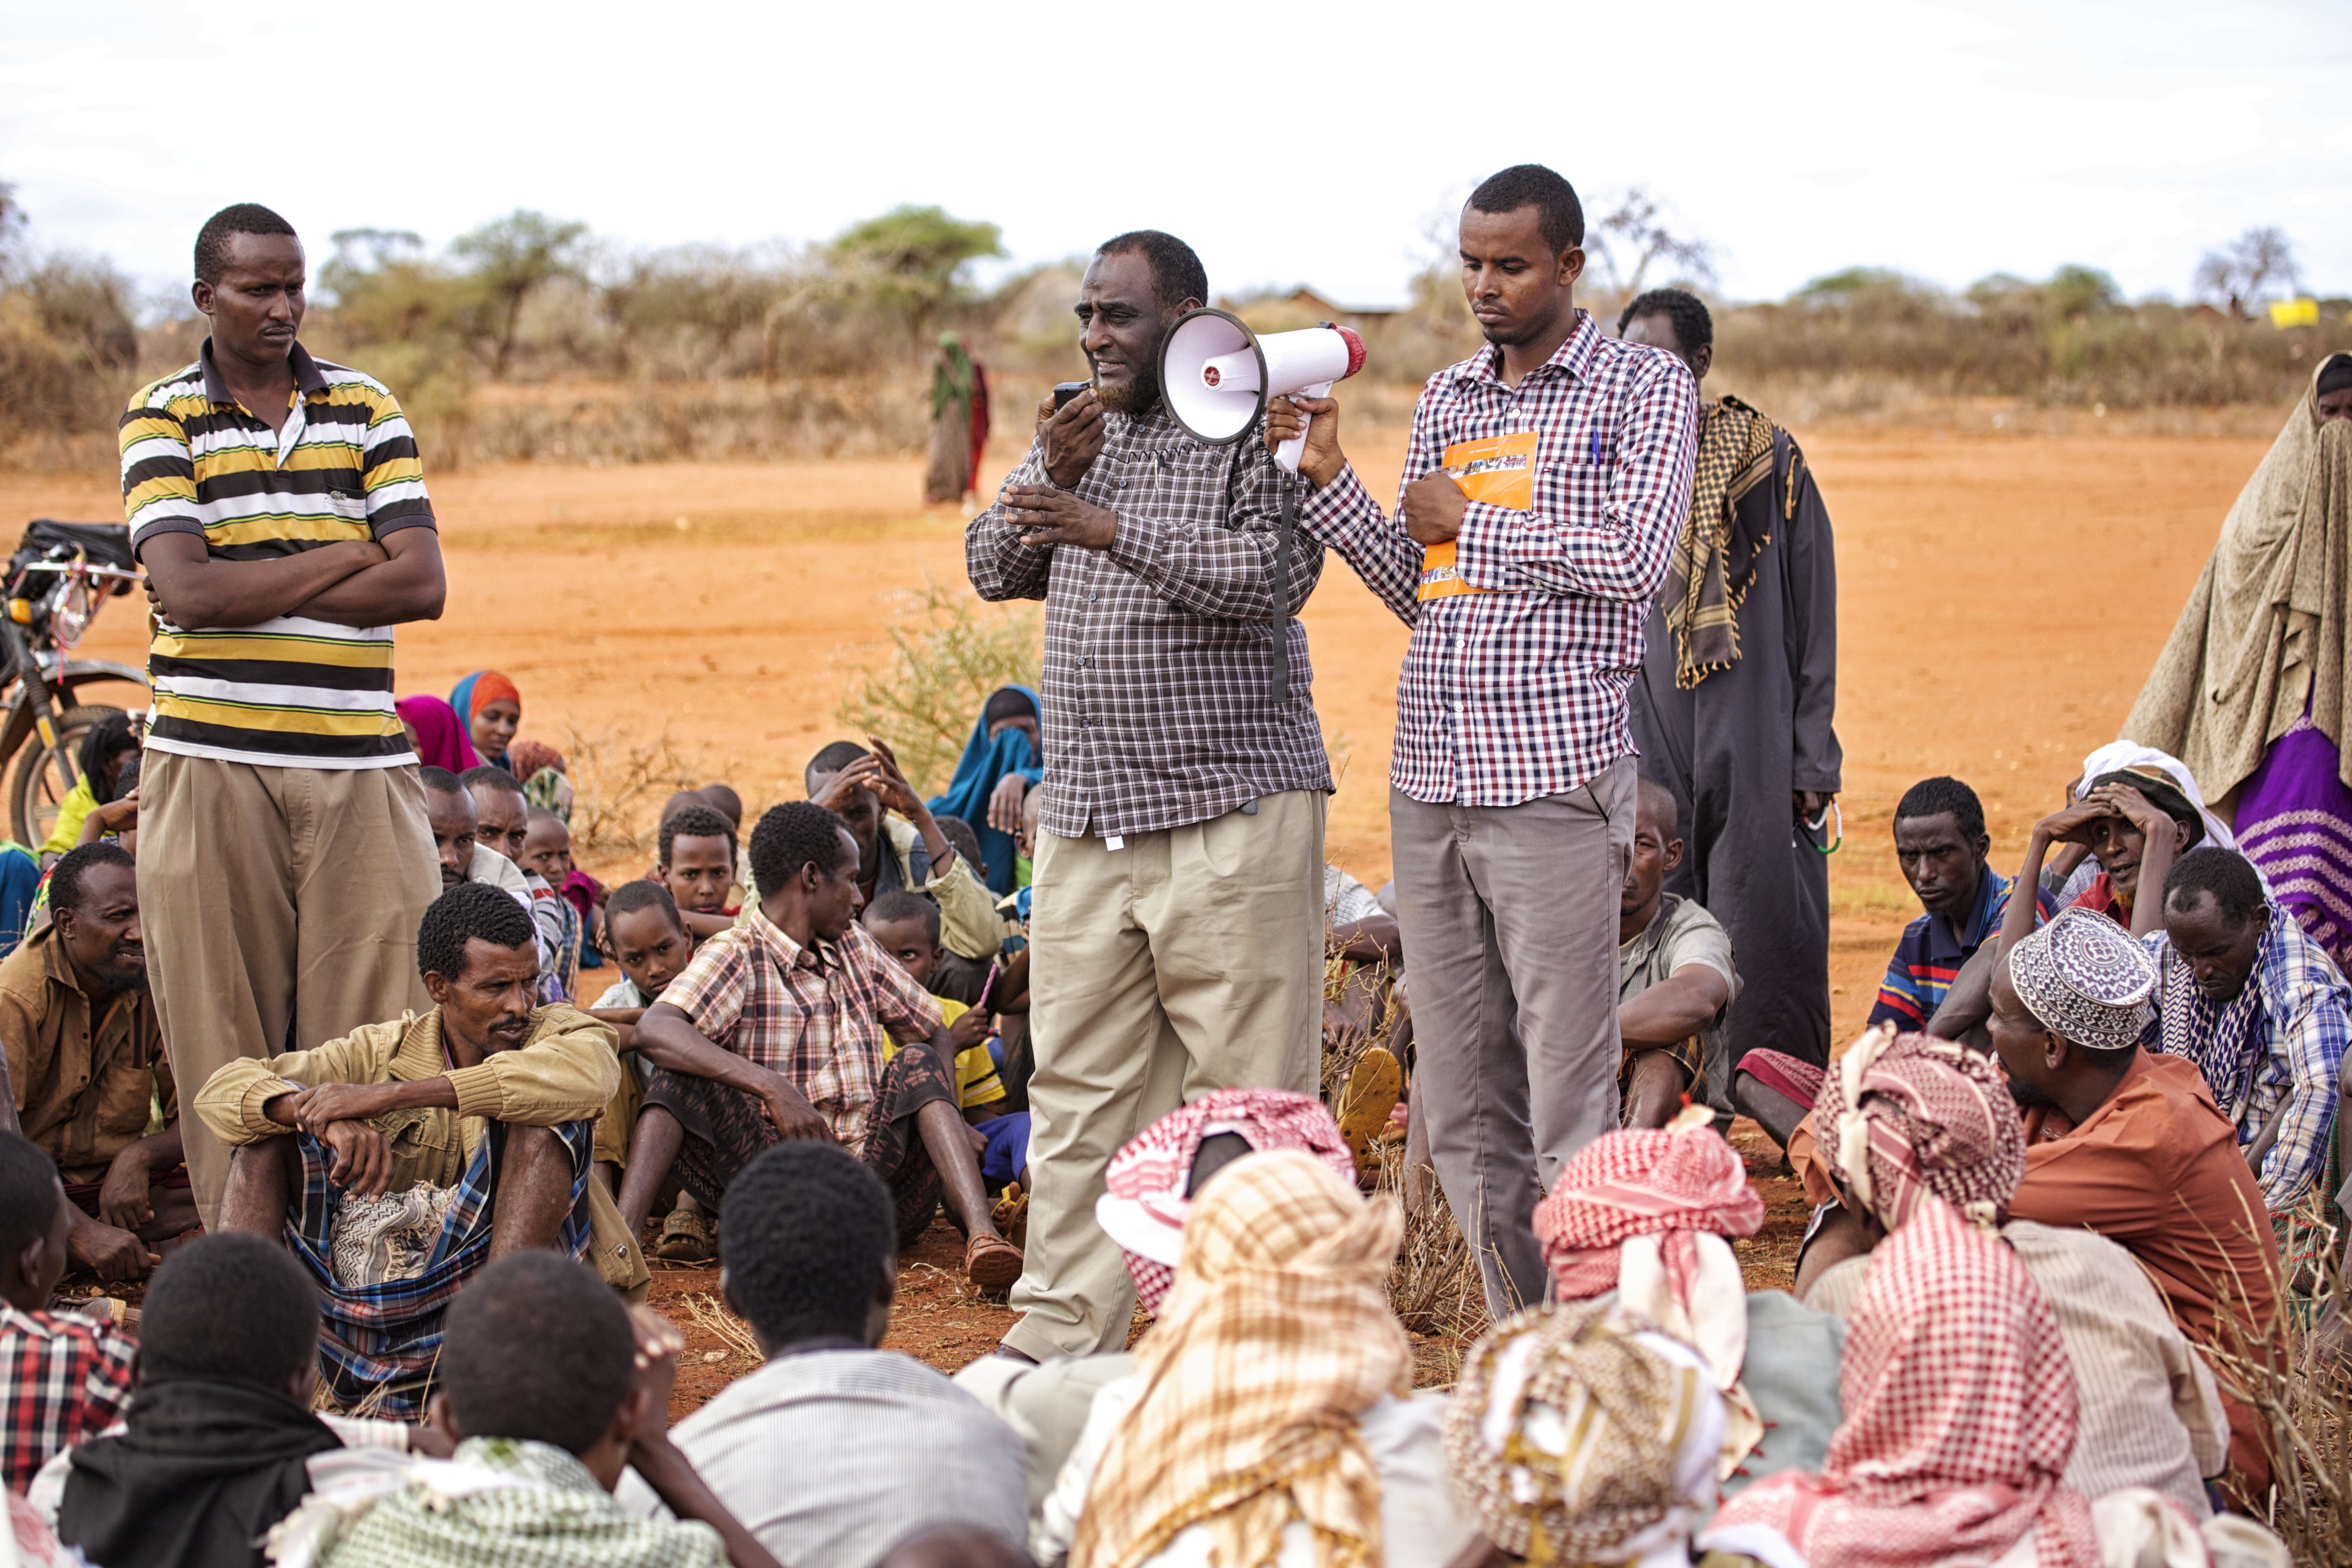 Grassroots communications in Wajir